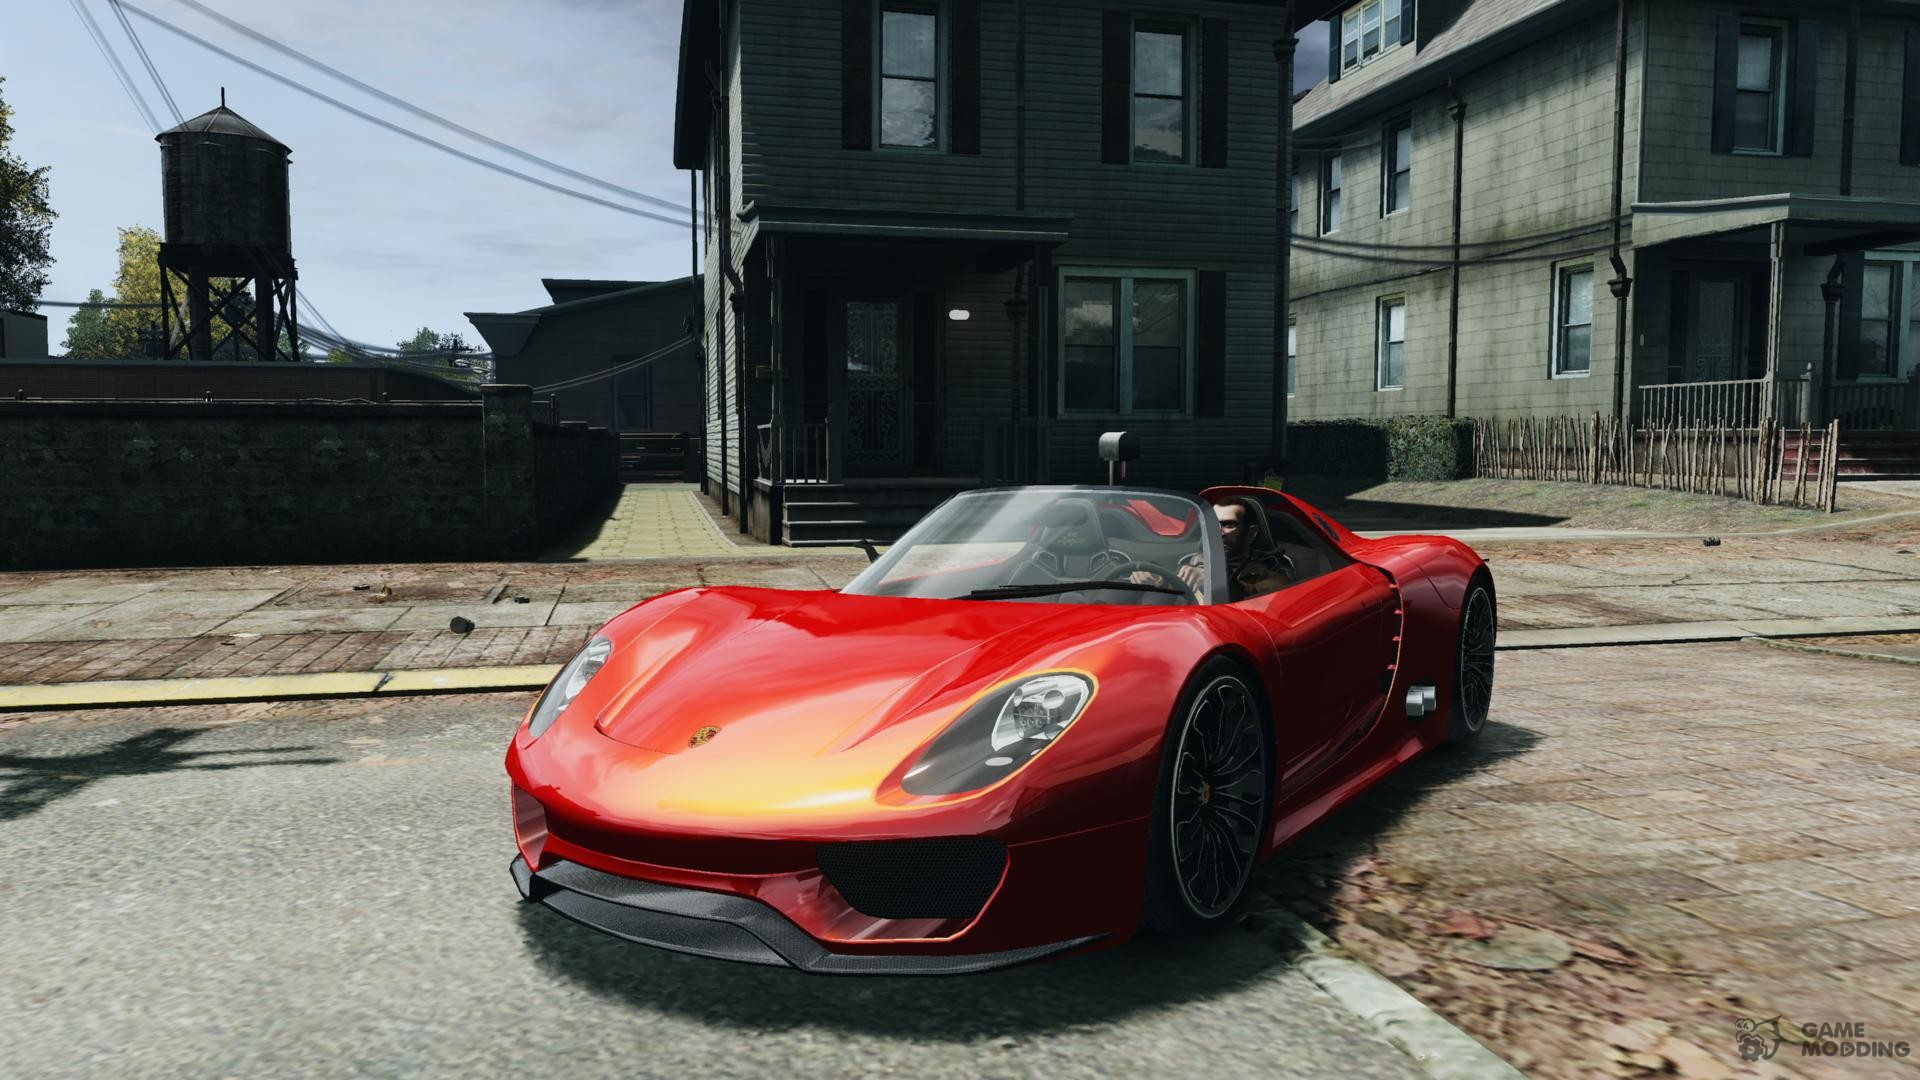 terrific nfs most wanted 2012 porsche 918 spyder concept location noisiestpassenger. Black Bedroom Furniture Sets. Home Design Ideas